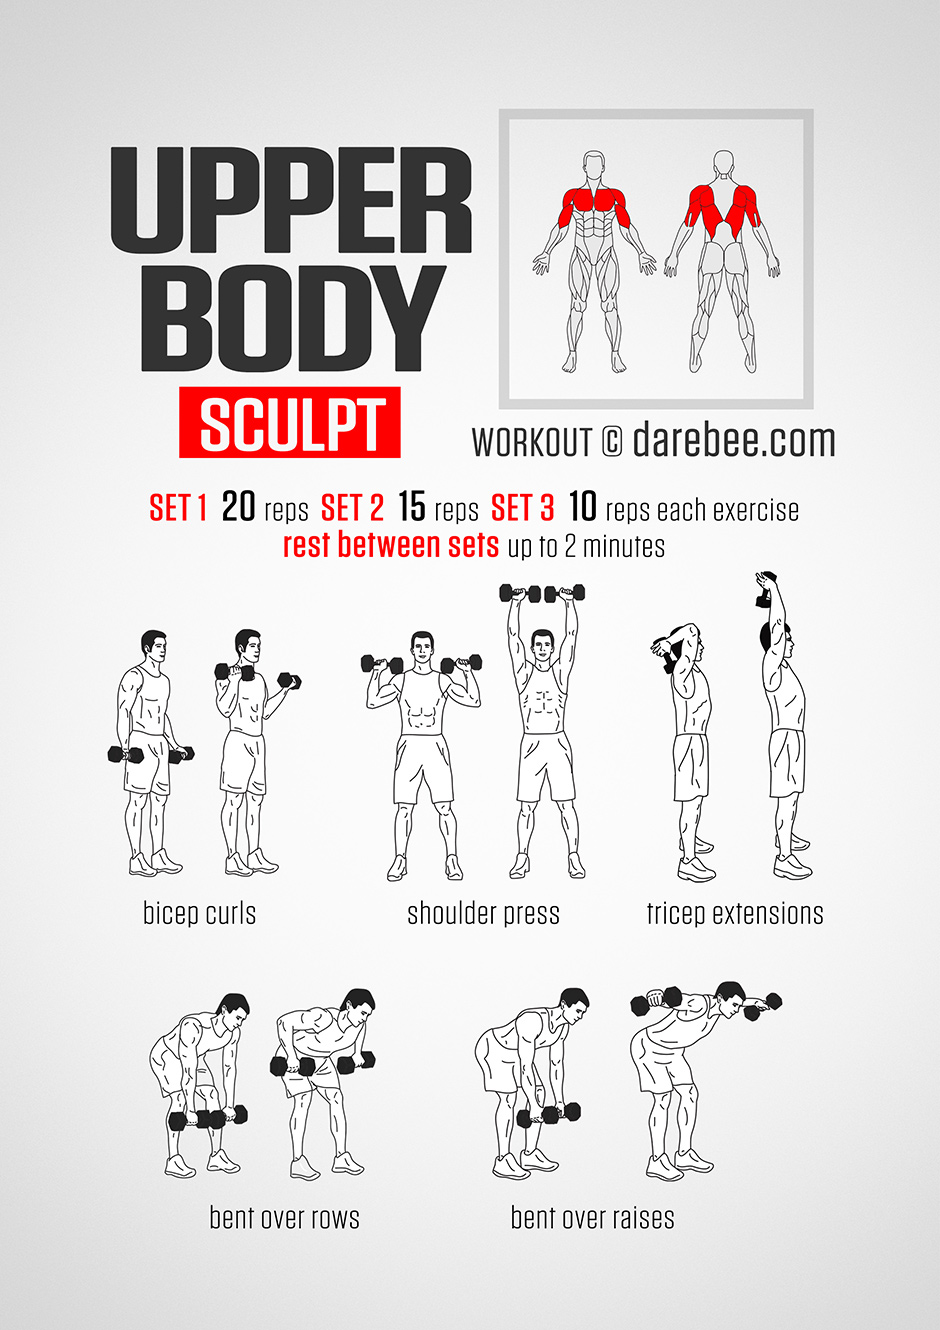 upper body workout neilarey dumbbells